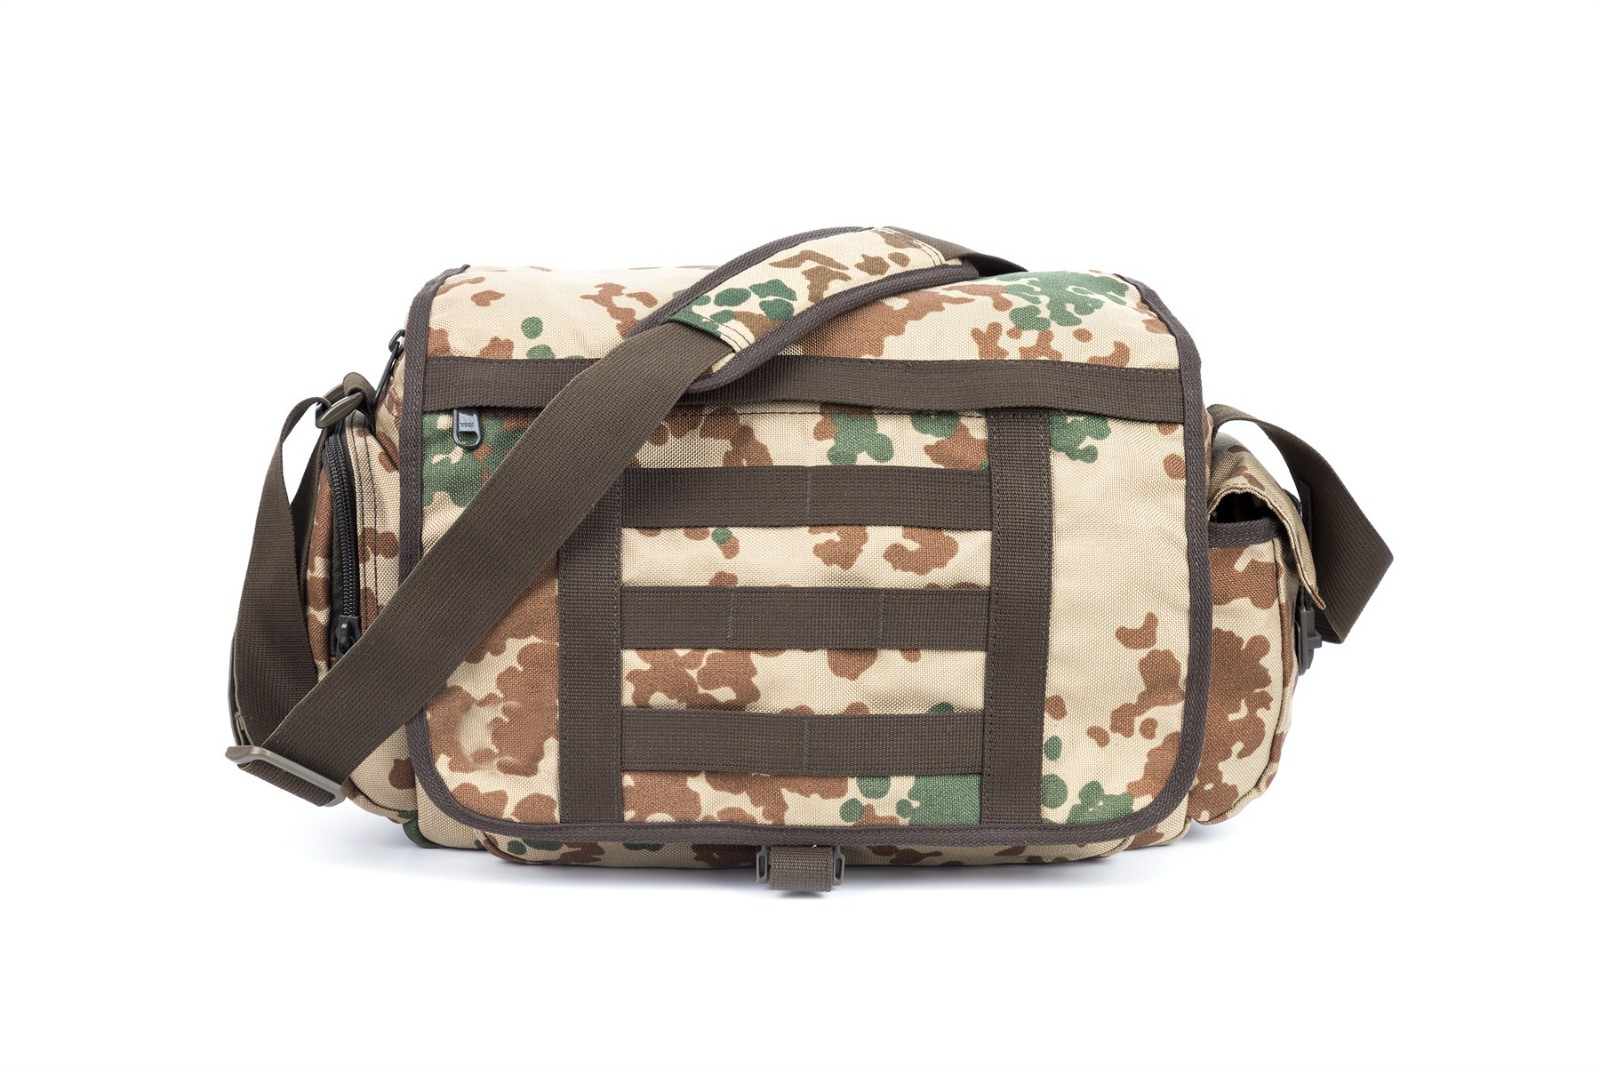 GF bags-Find Military Gear Bags Military Messenger Bag From GF Bags-4